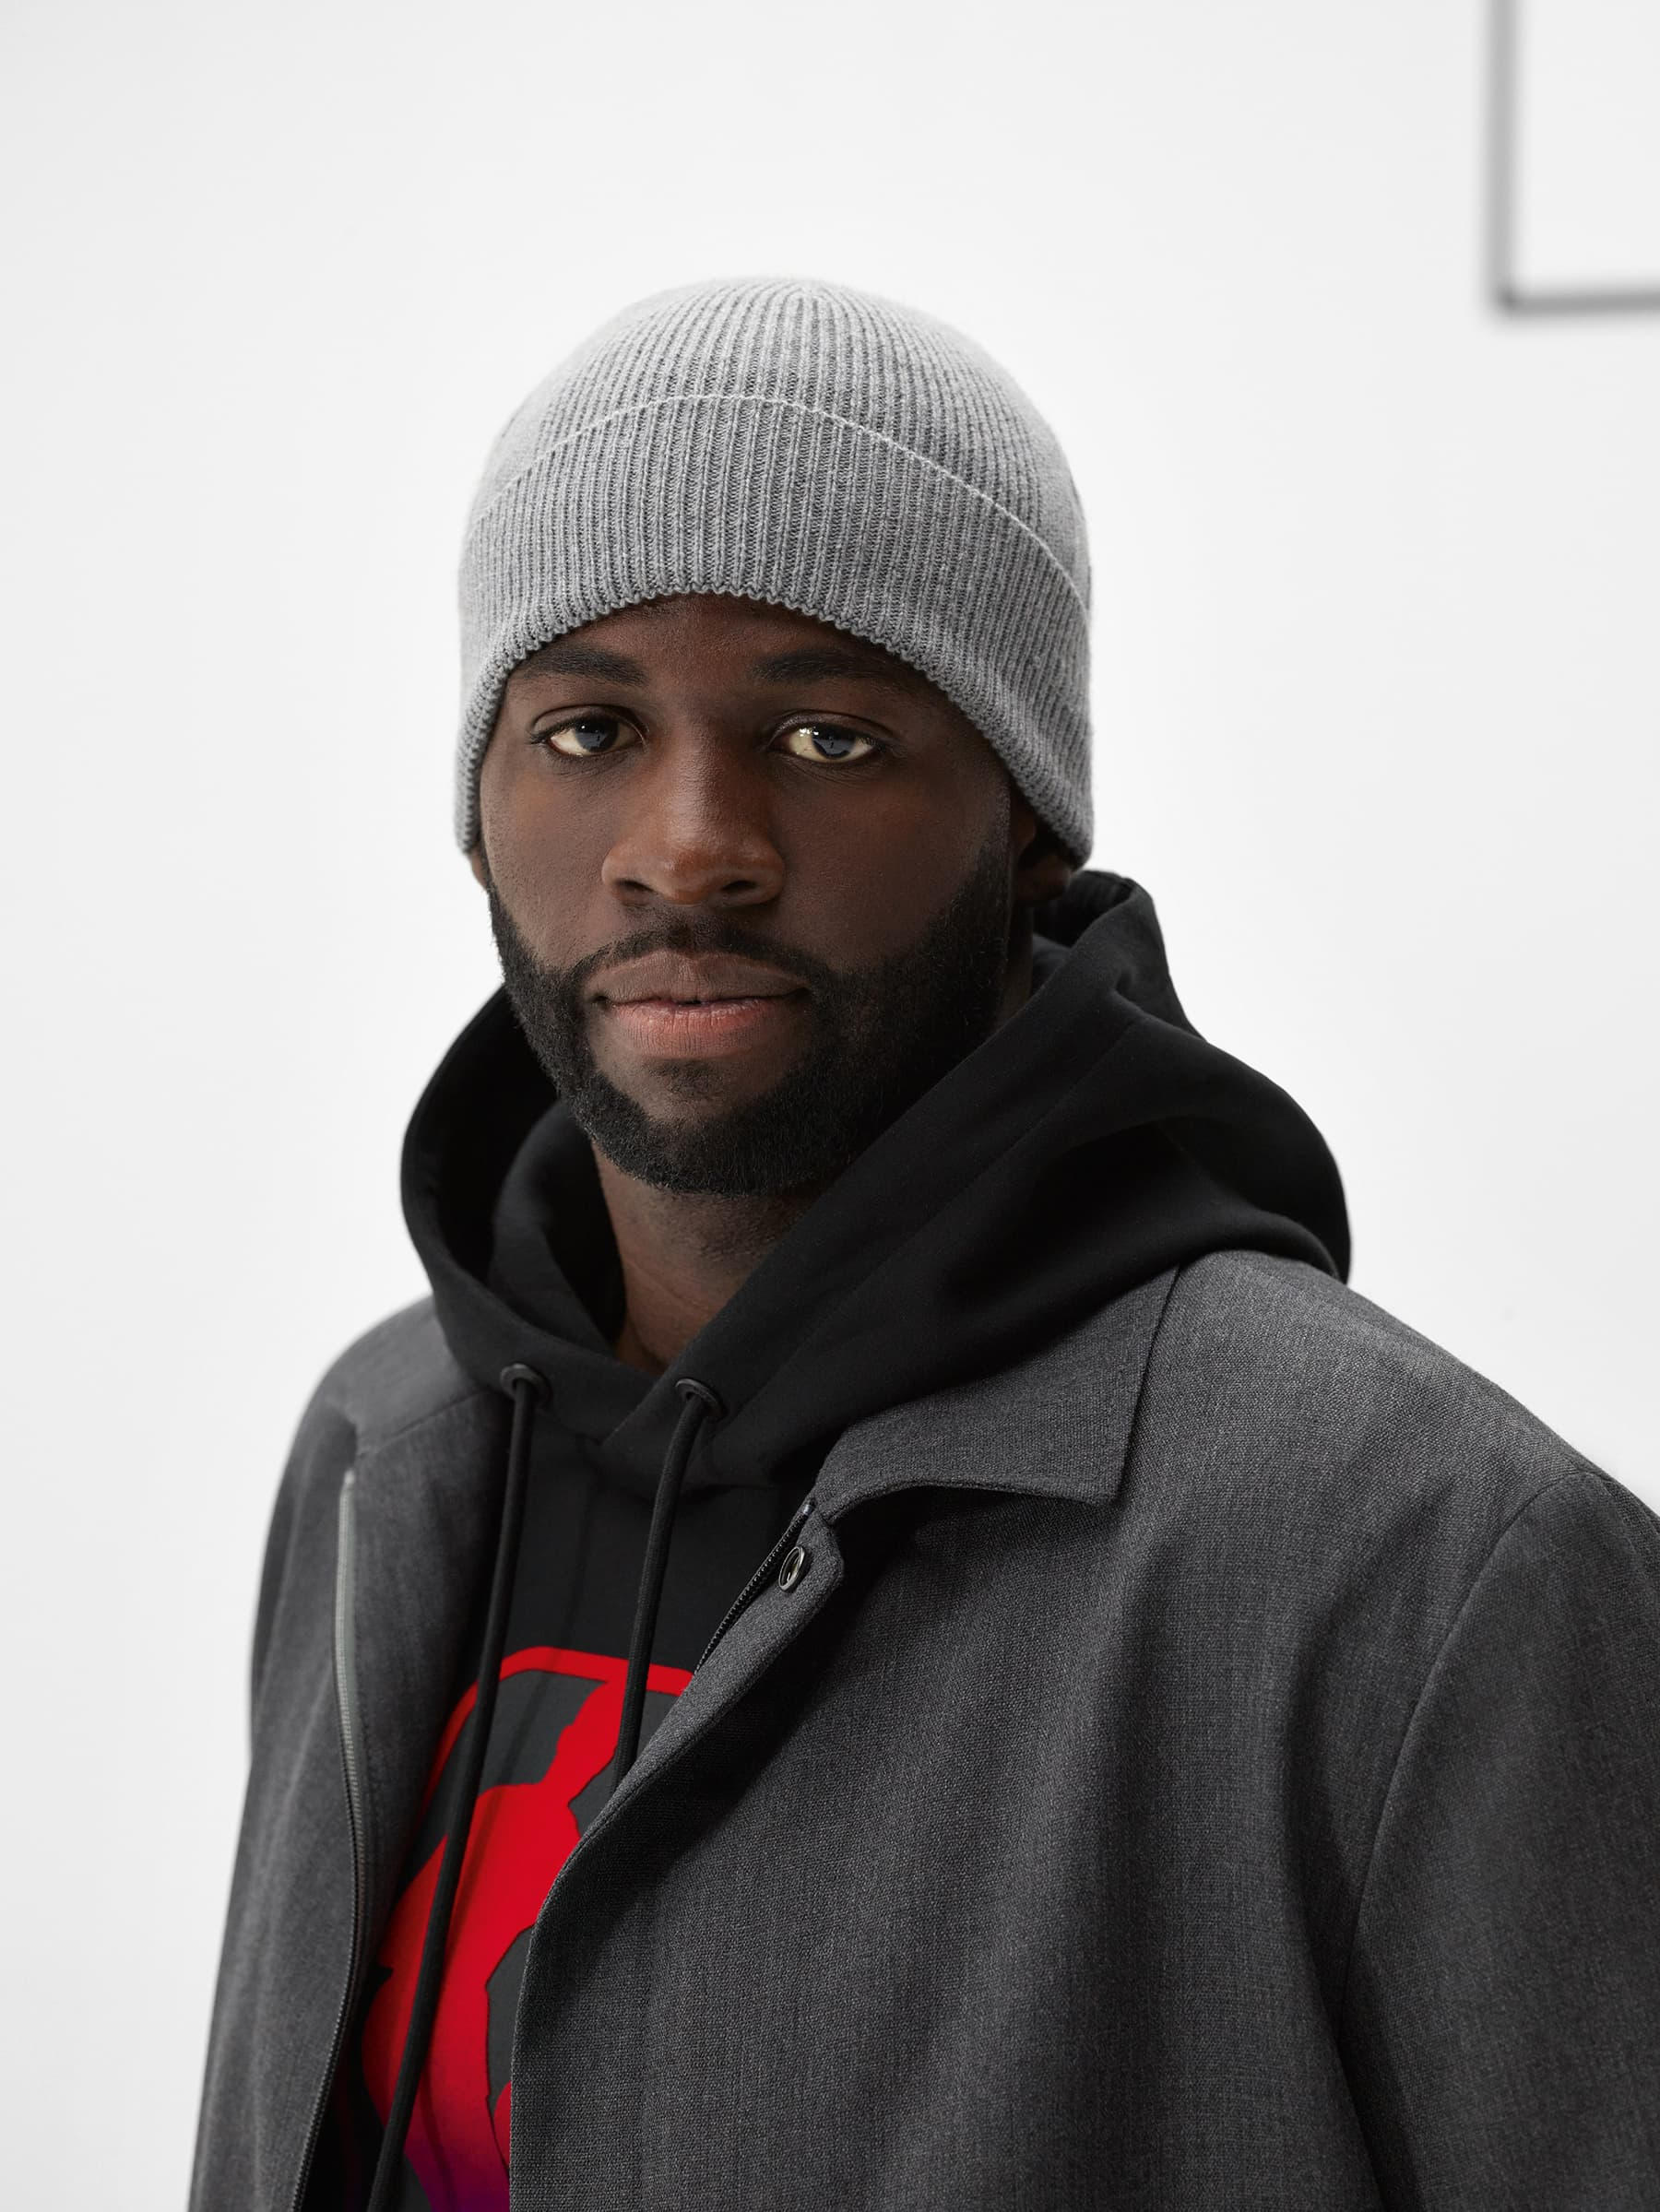 Boss x NBA Capsule Collection with Draymond Green